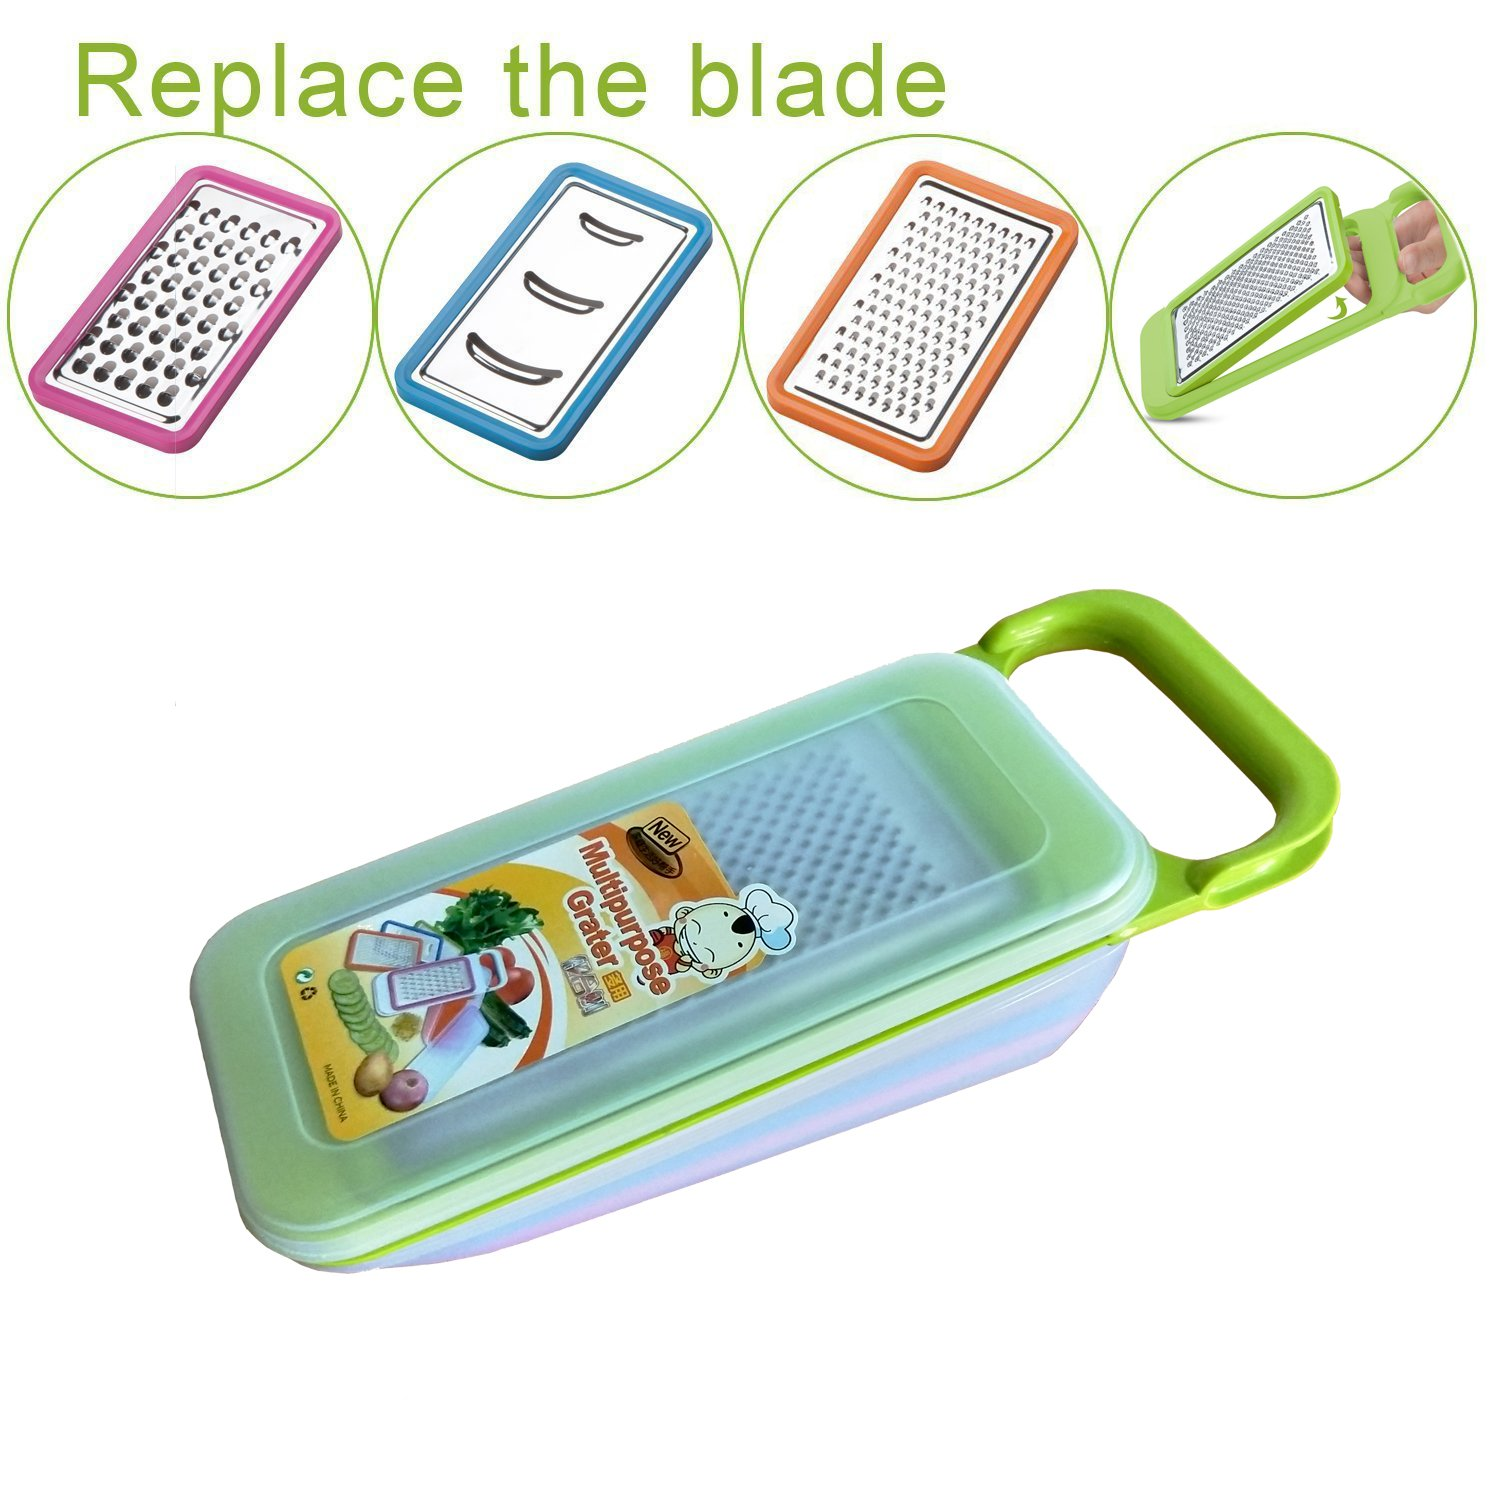 Tenta Kitchen 4 Piece Cheese Grater Set with Container - Zester ...